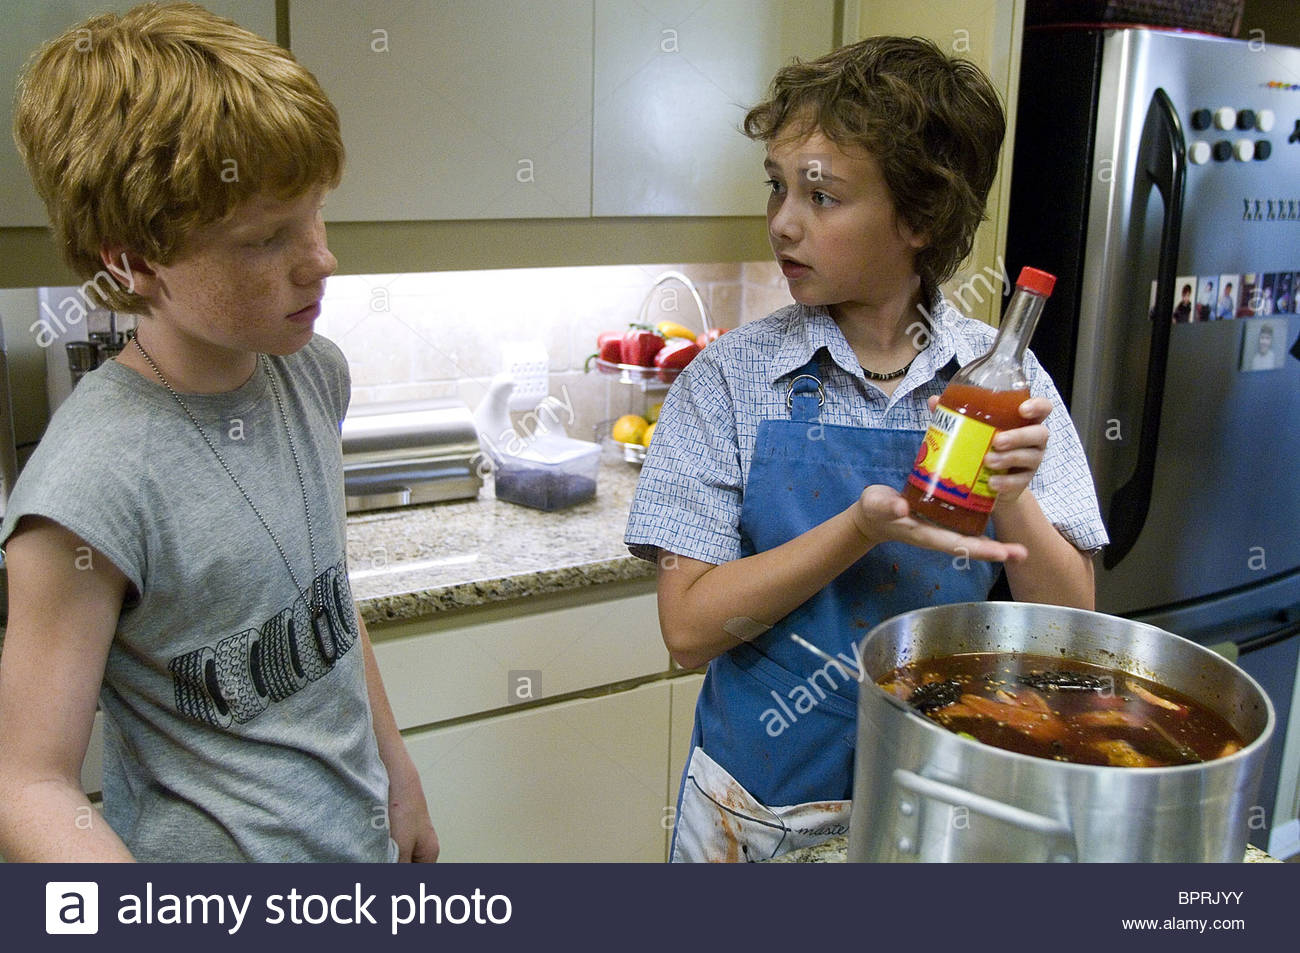 Adam Hicks & Ryan Malgarini How To Eat Fried Worms (2006)